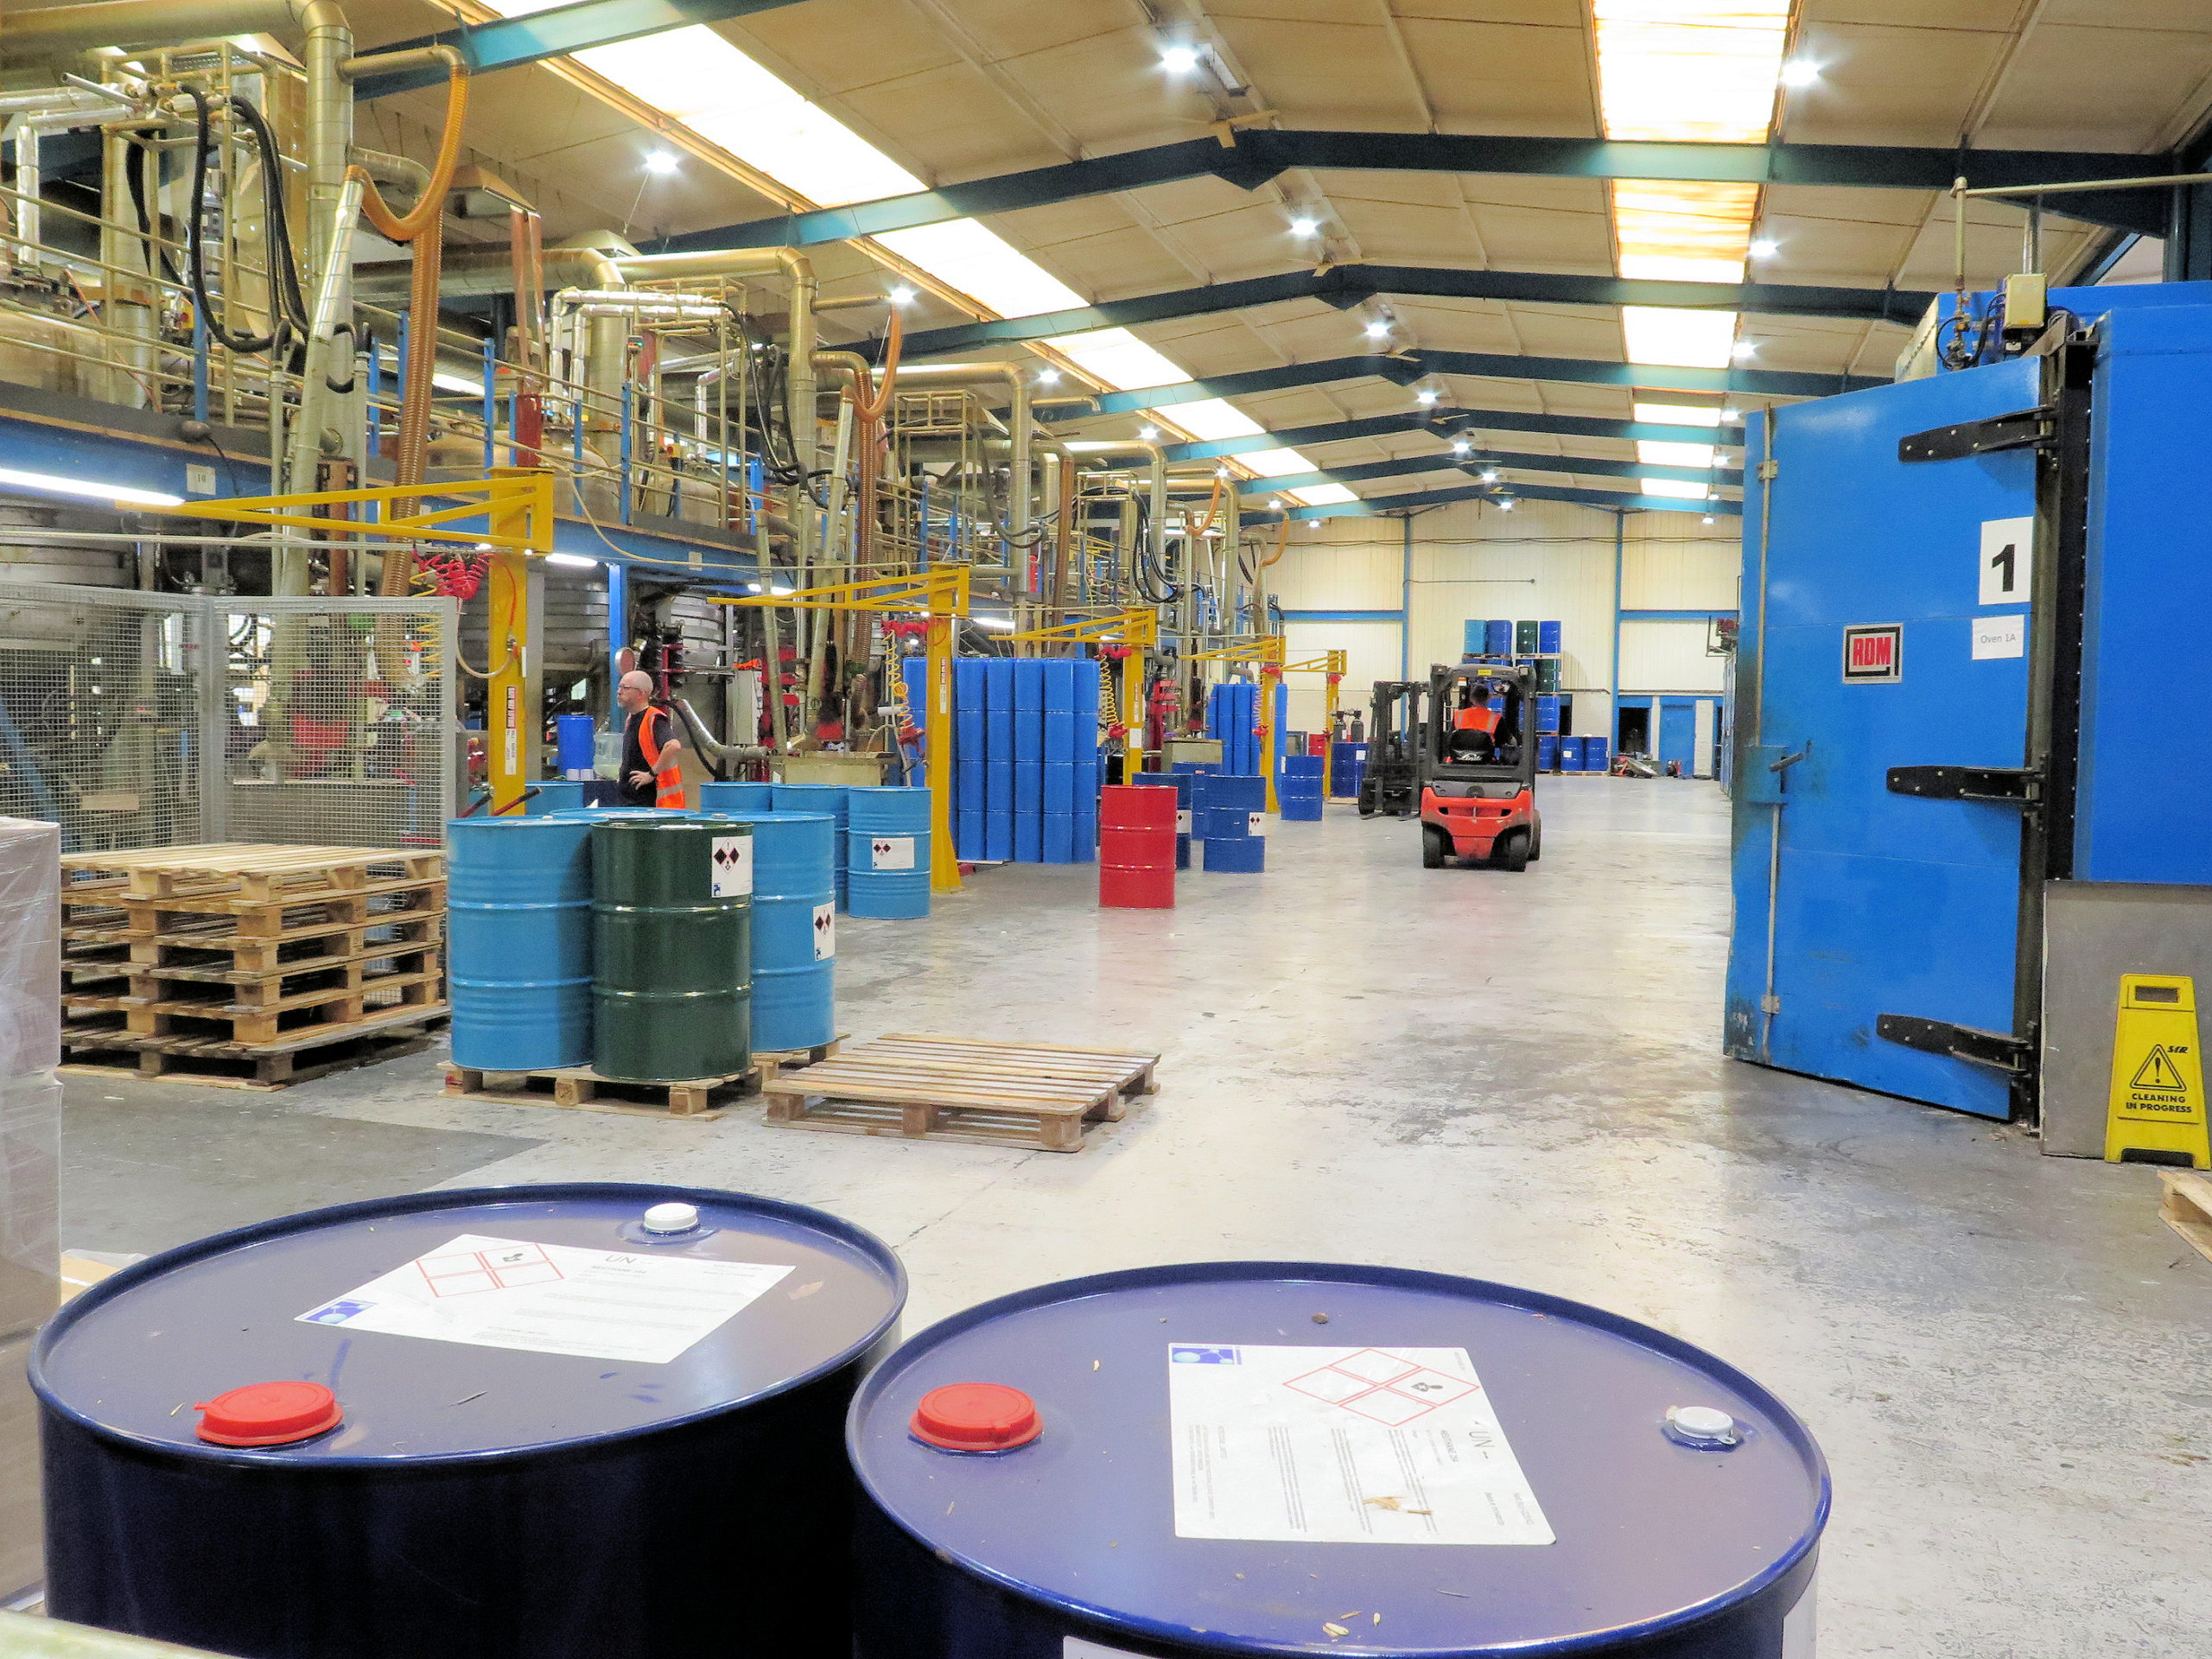 Notedome manufacturing facility